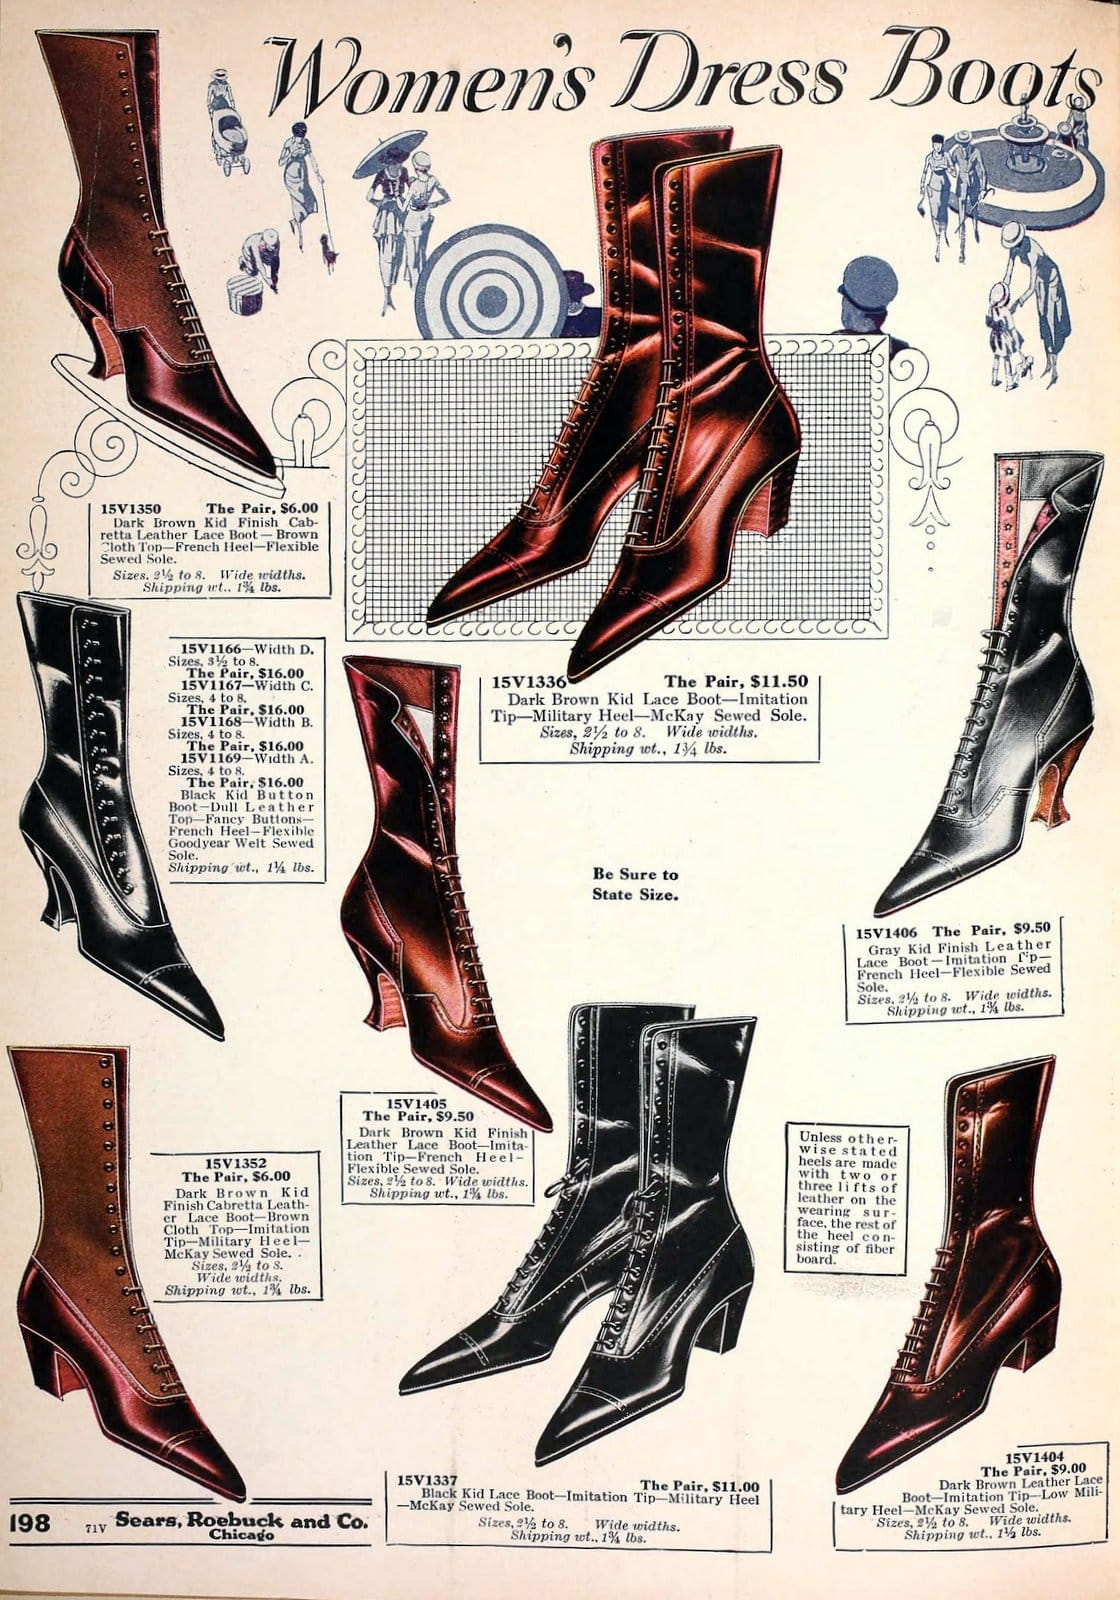 Old-fashioned women's shoes from 1920 (4)